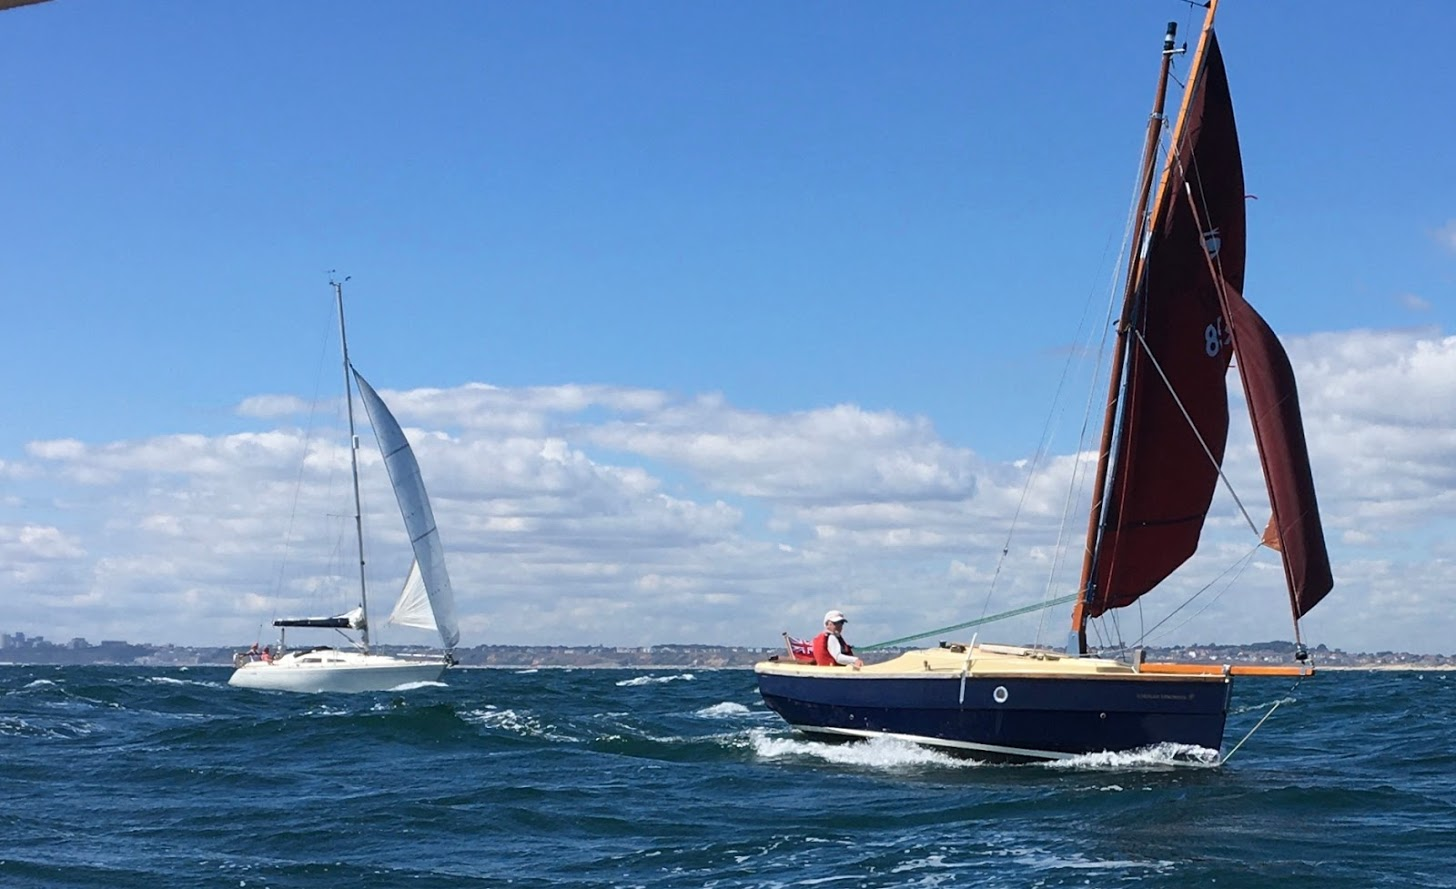 PYC member and Shrimper owner David Lack (sailing his Atlantide) escorts a group of Shrimpers to the Solent